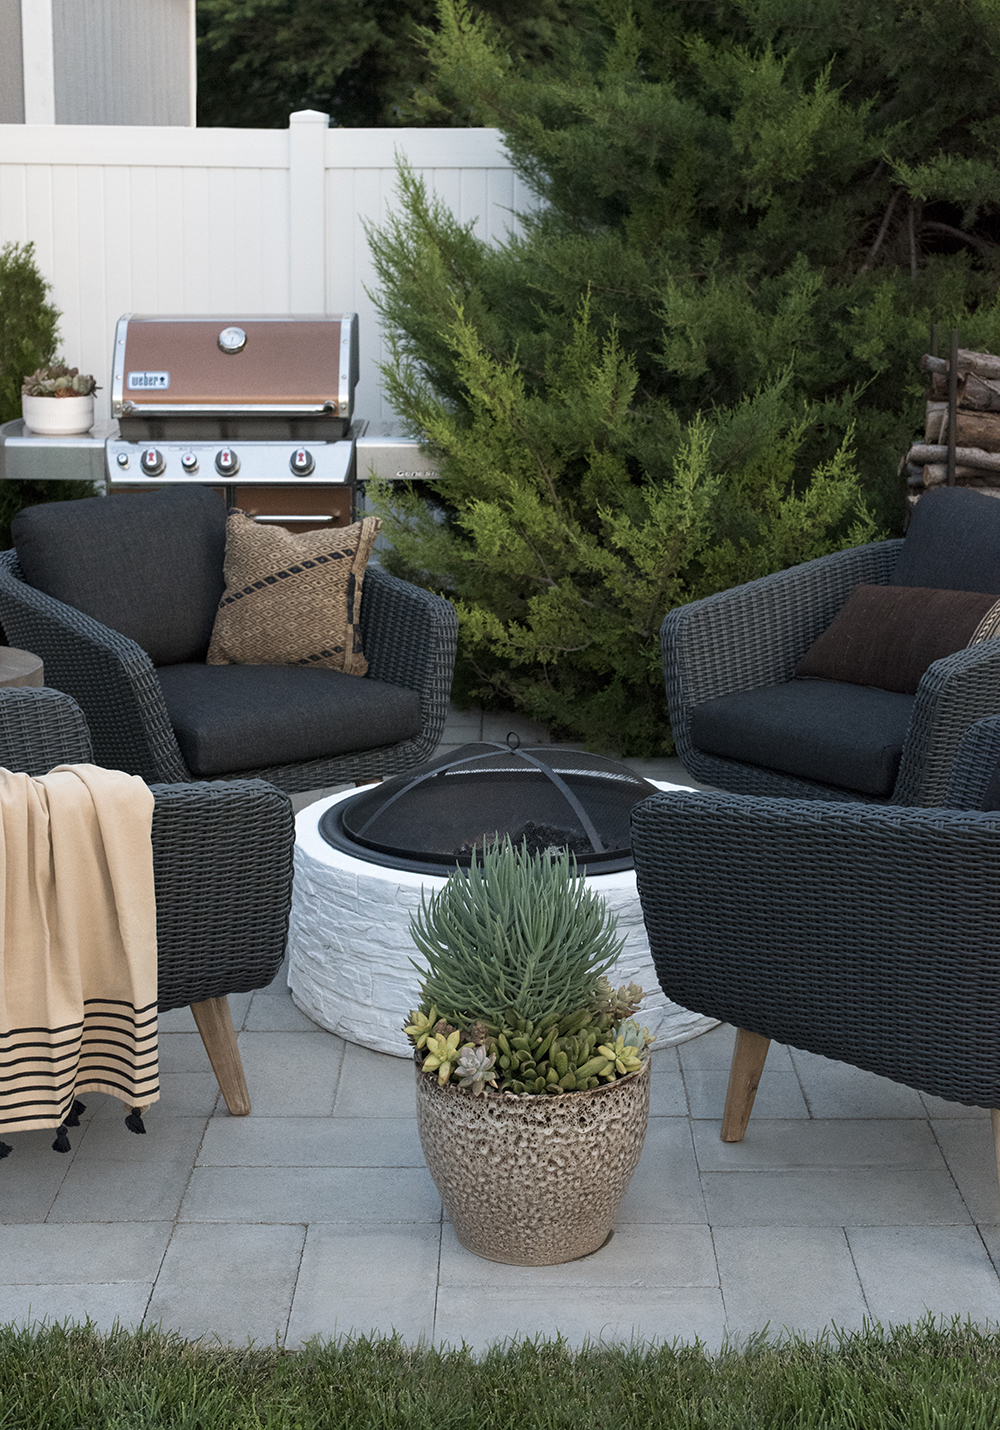 Outdoor Seating Area Around Fire Pit On Patio Room For Tuesday